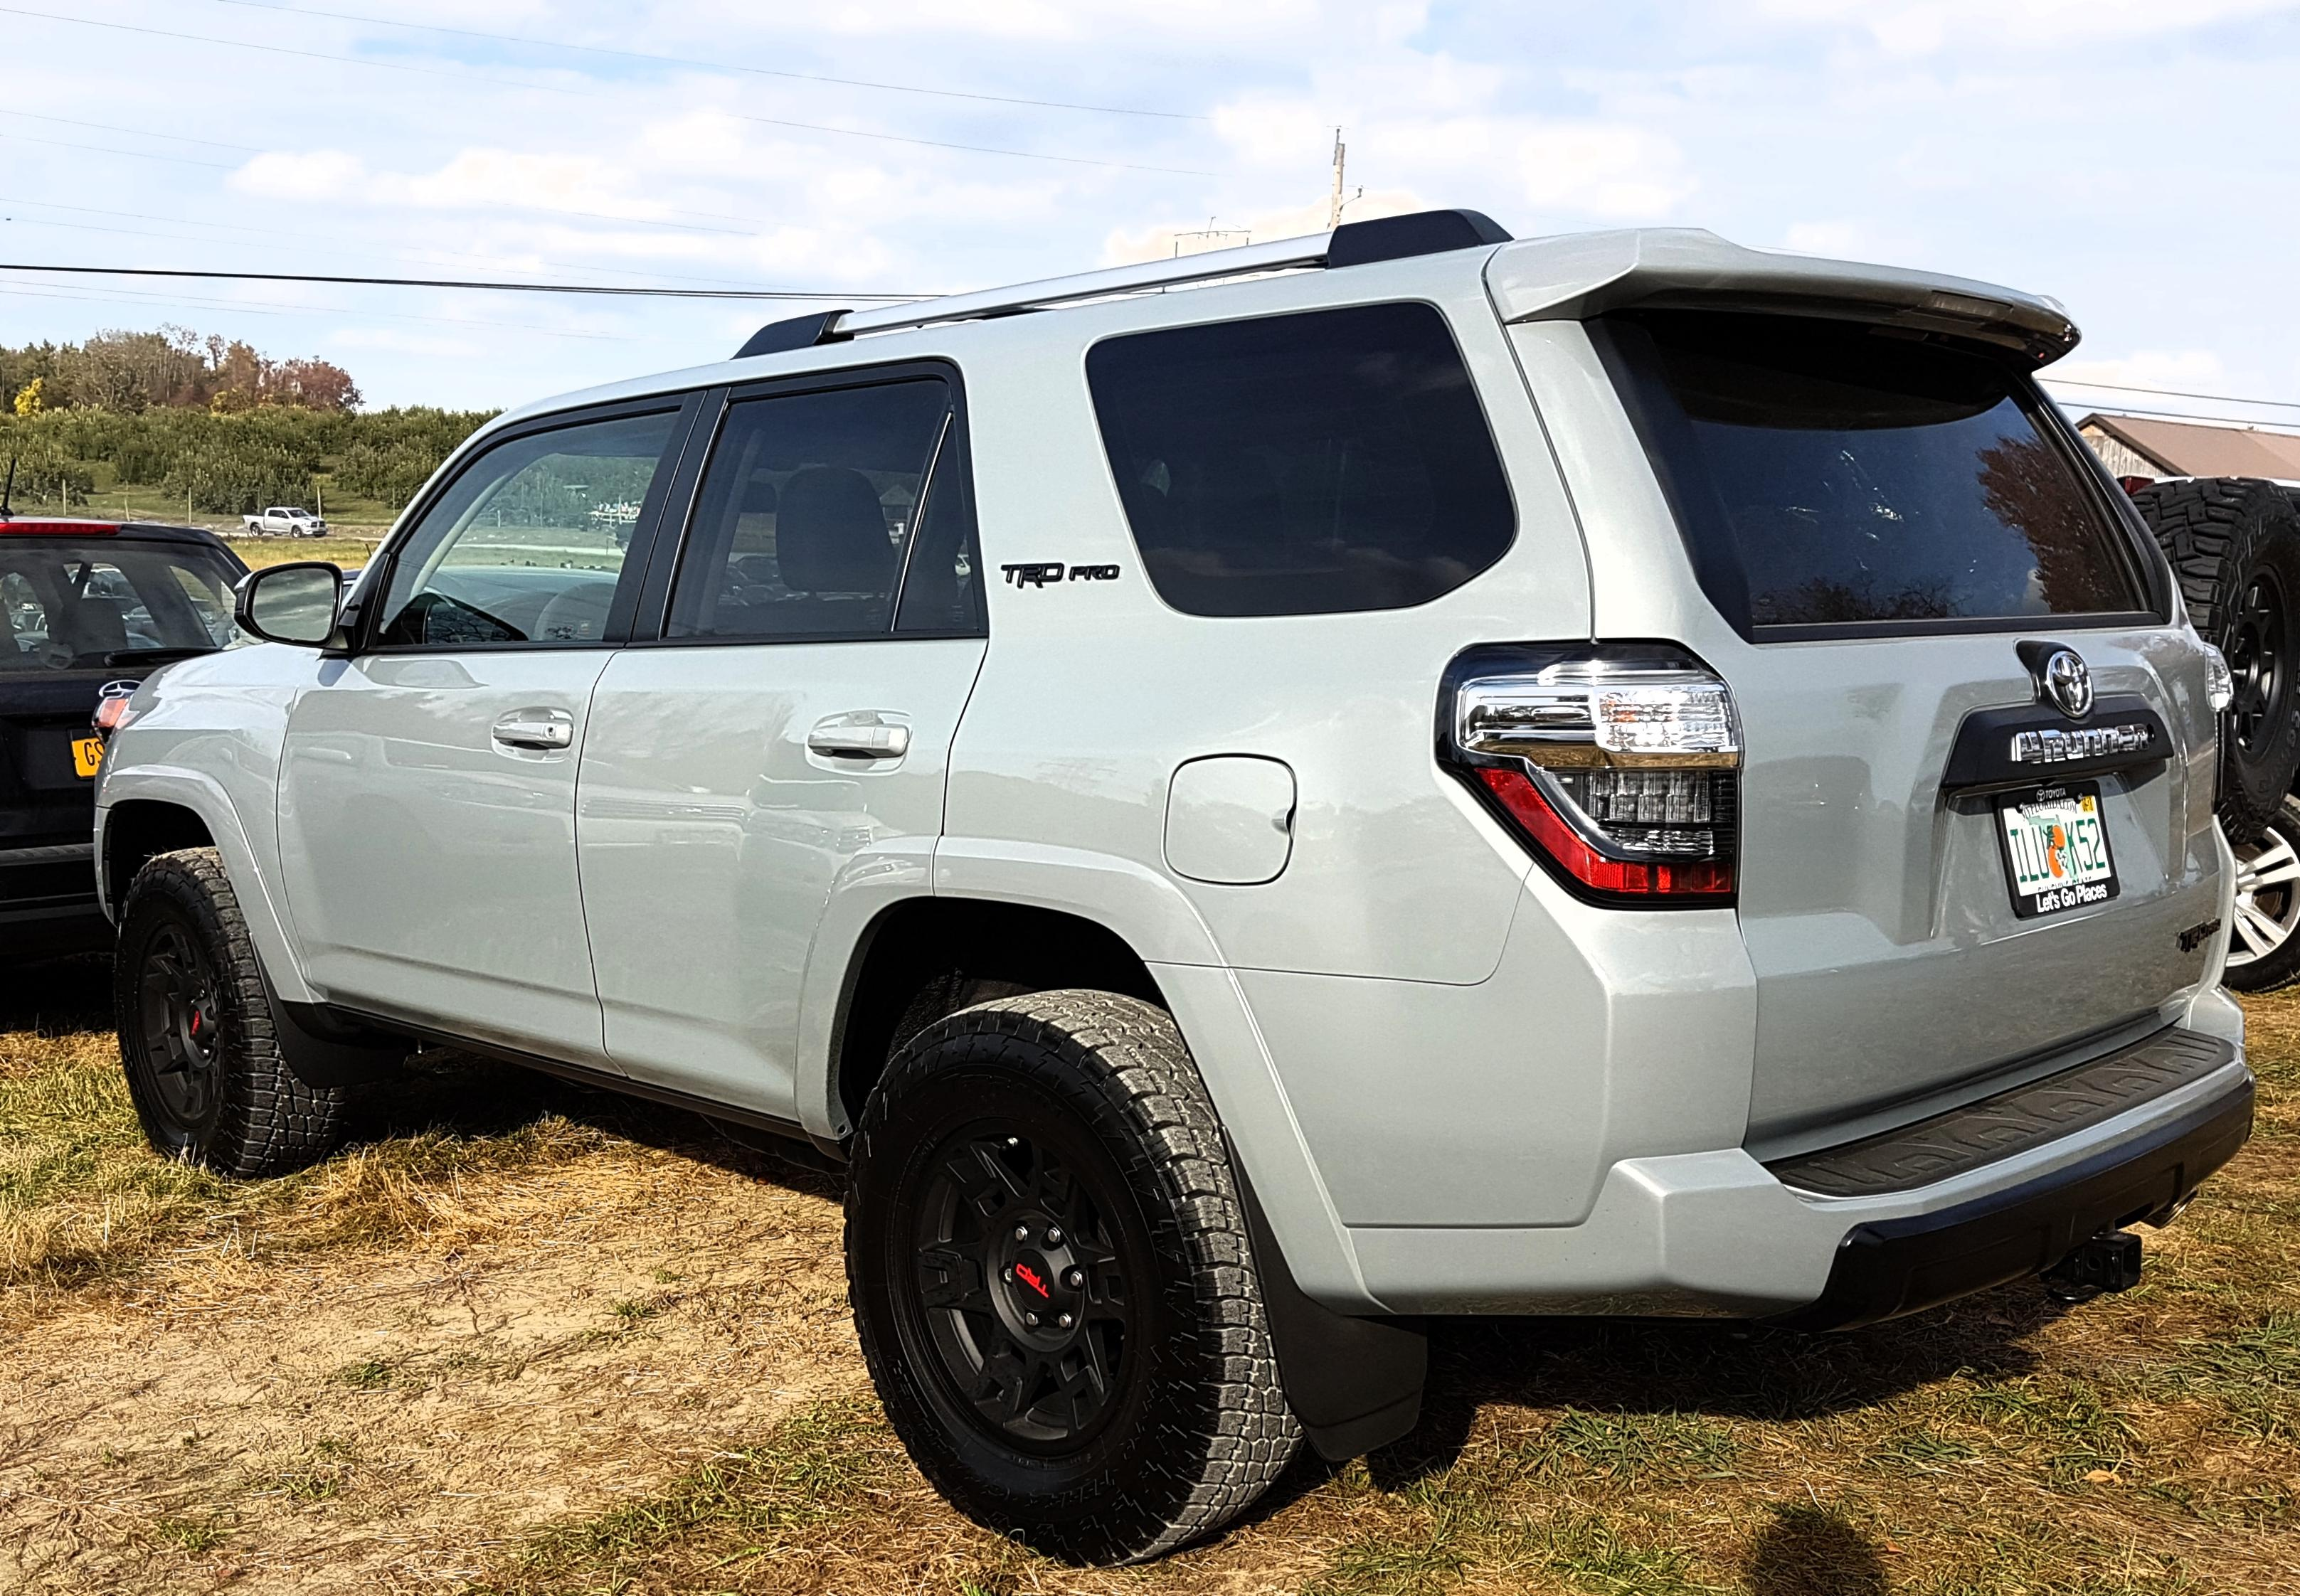 toyota 4runner toyota runner sr premium wd hanover ma with toyota 4runner cheap exterior color. Black Bedroom Furniture Sets. Home Design Ideas